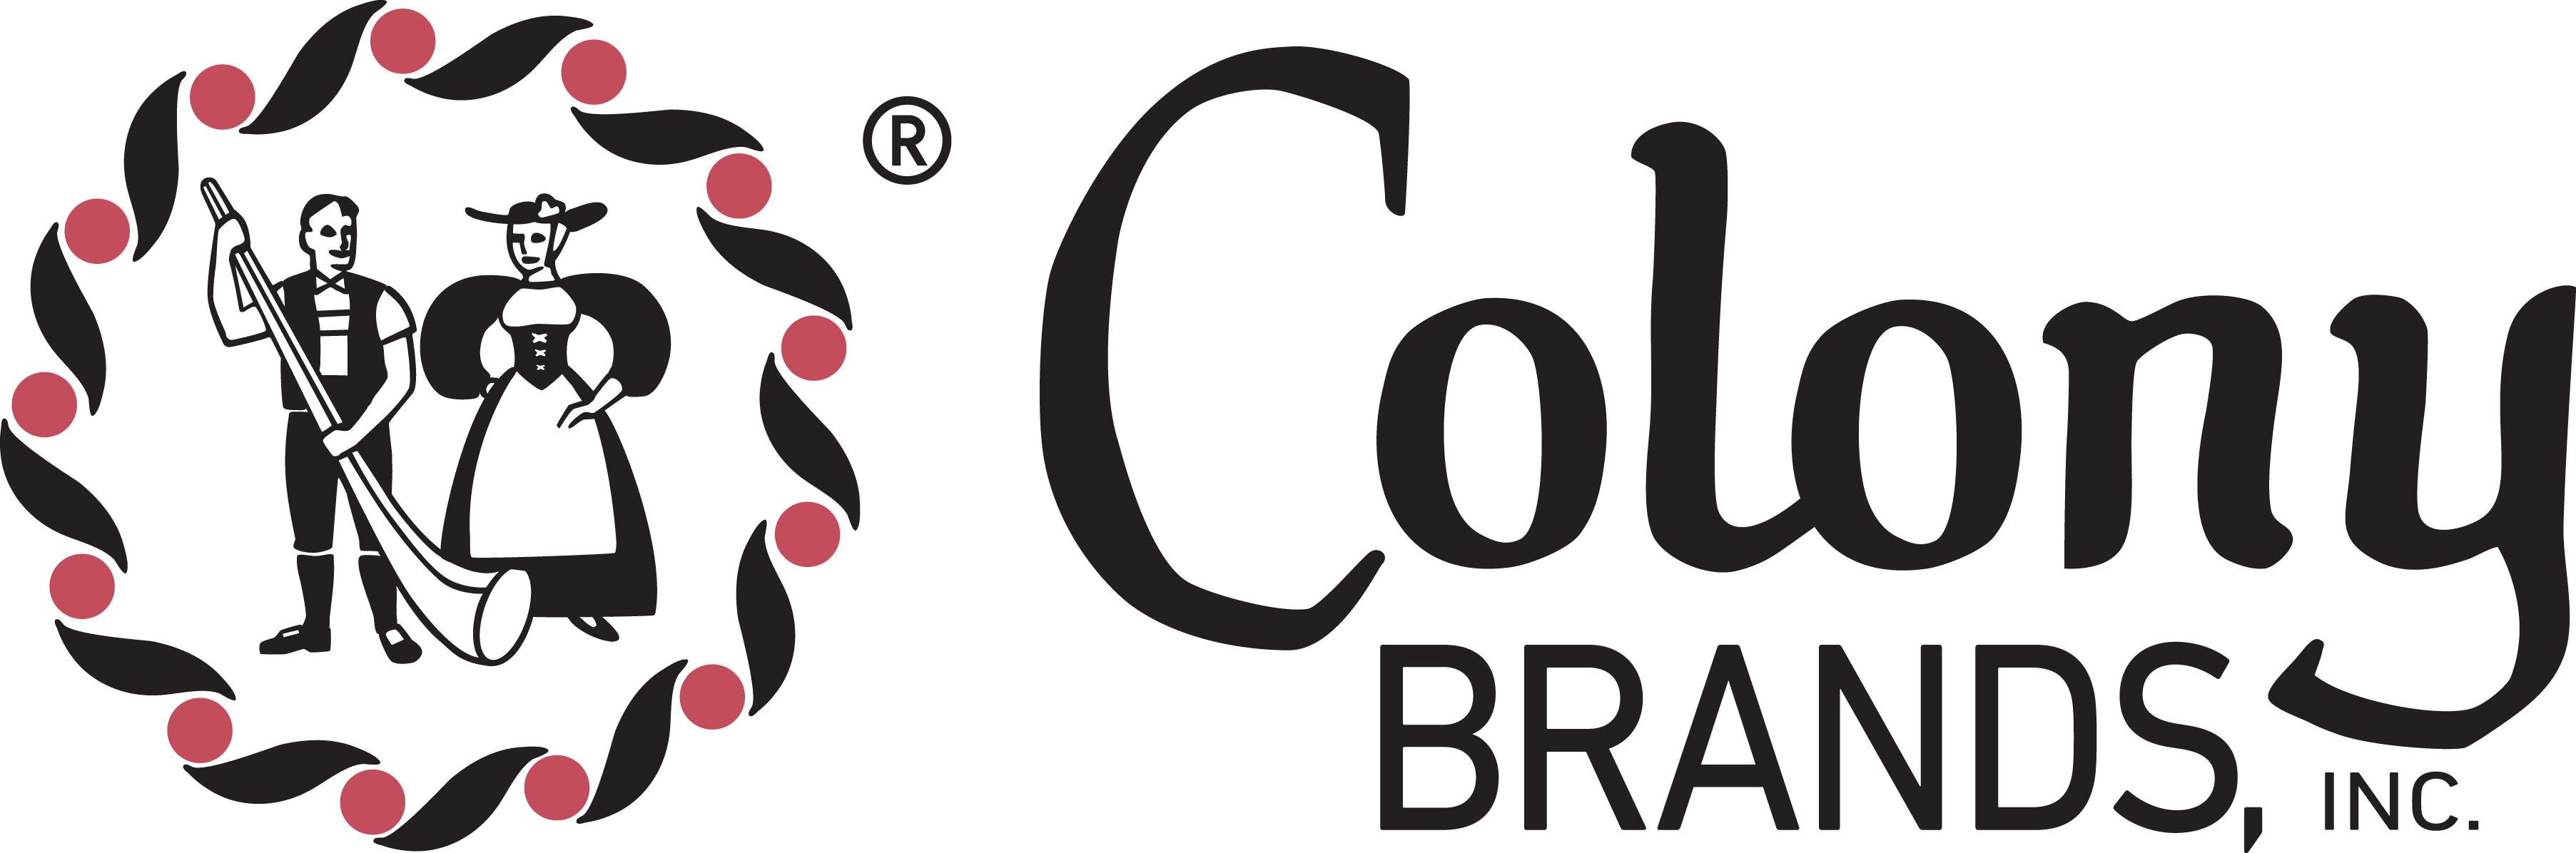 Colony Brands logo